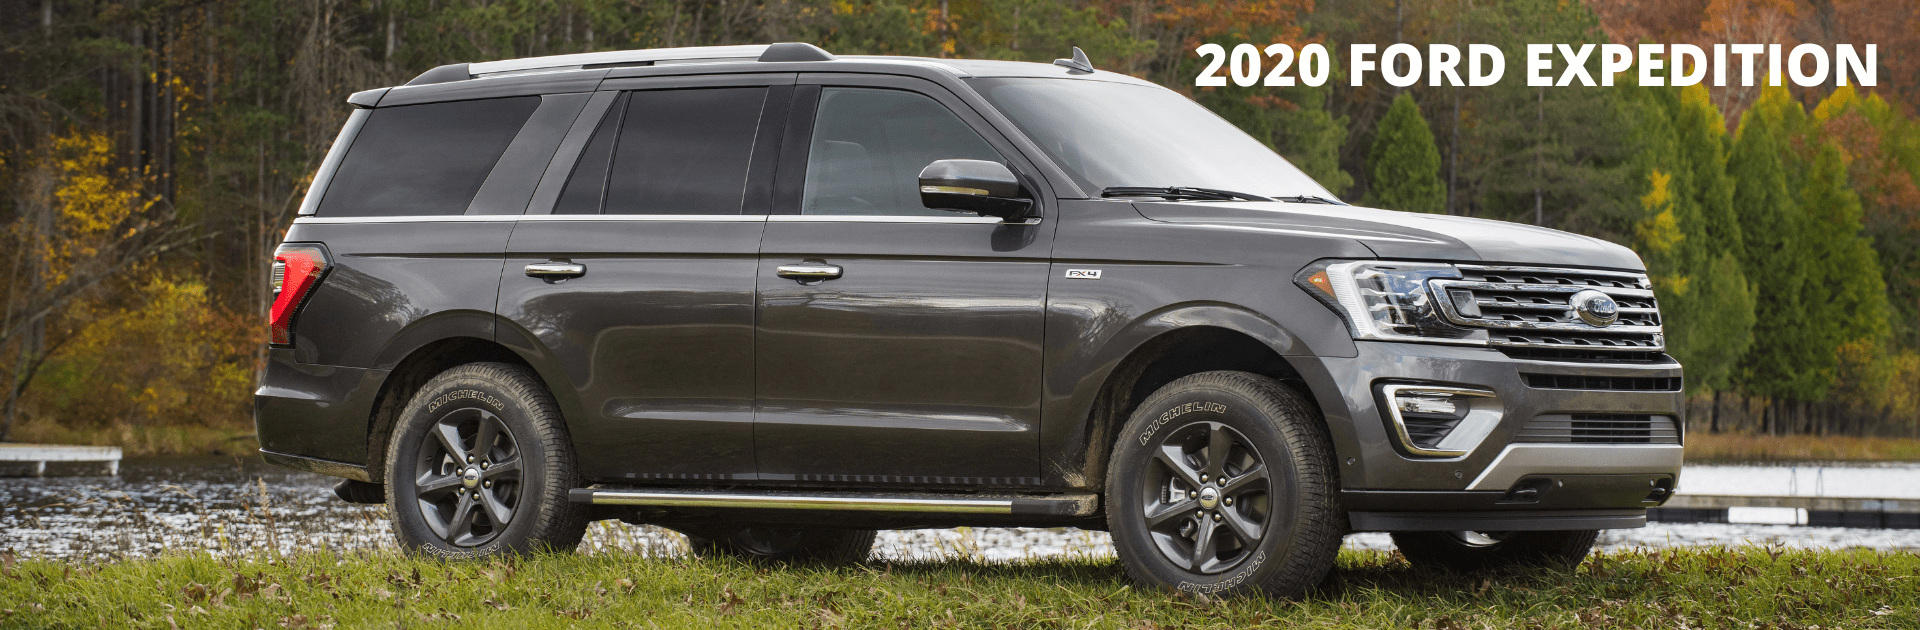 2020 Ford Expedition Slider Min